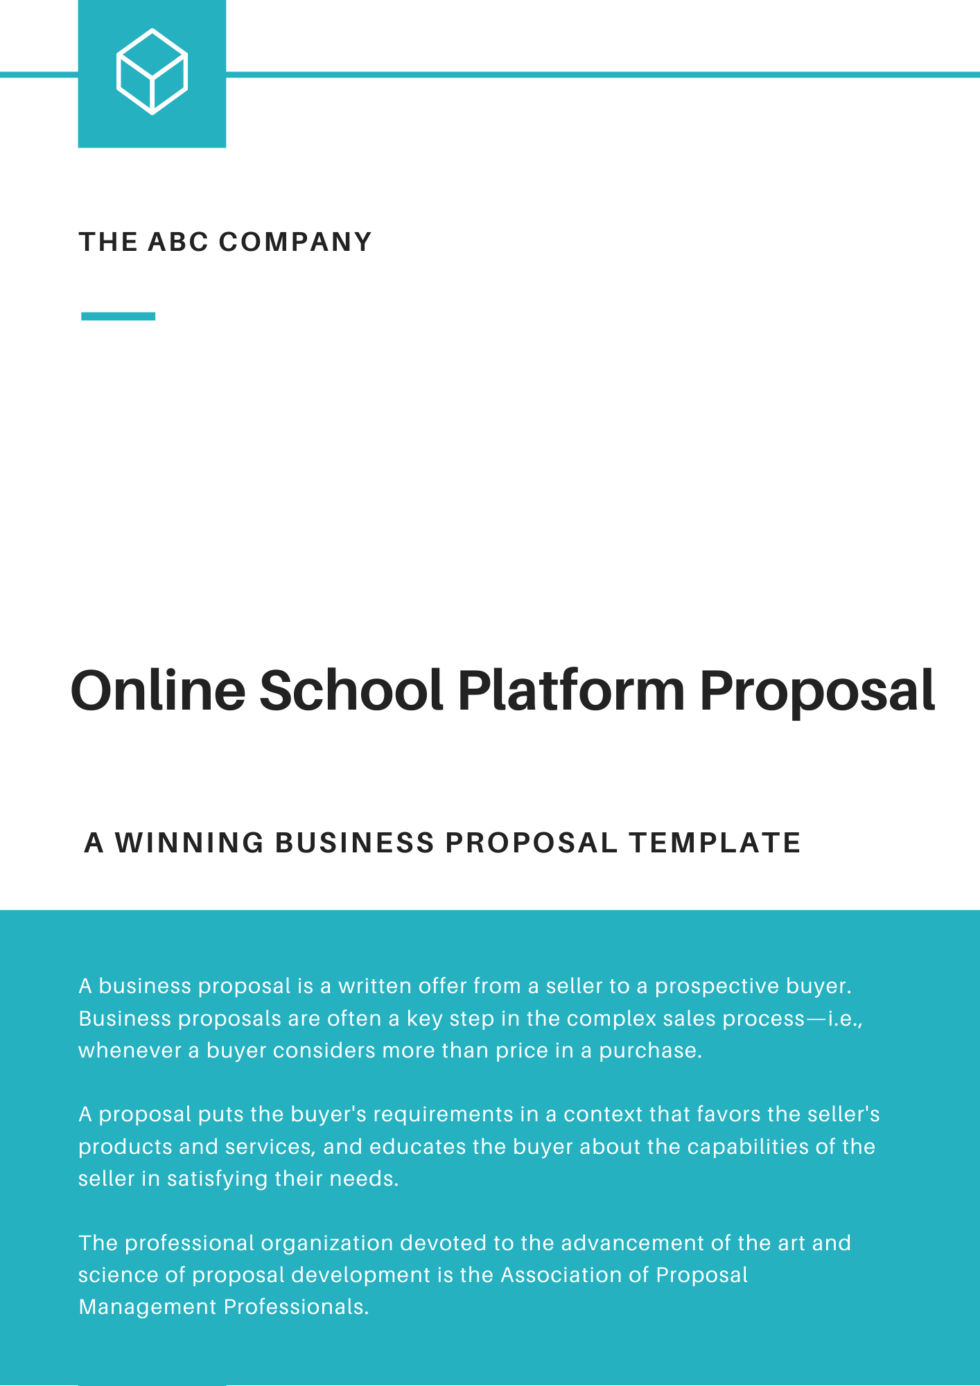 Online School Platform Proposal